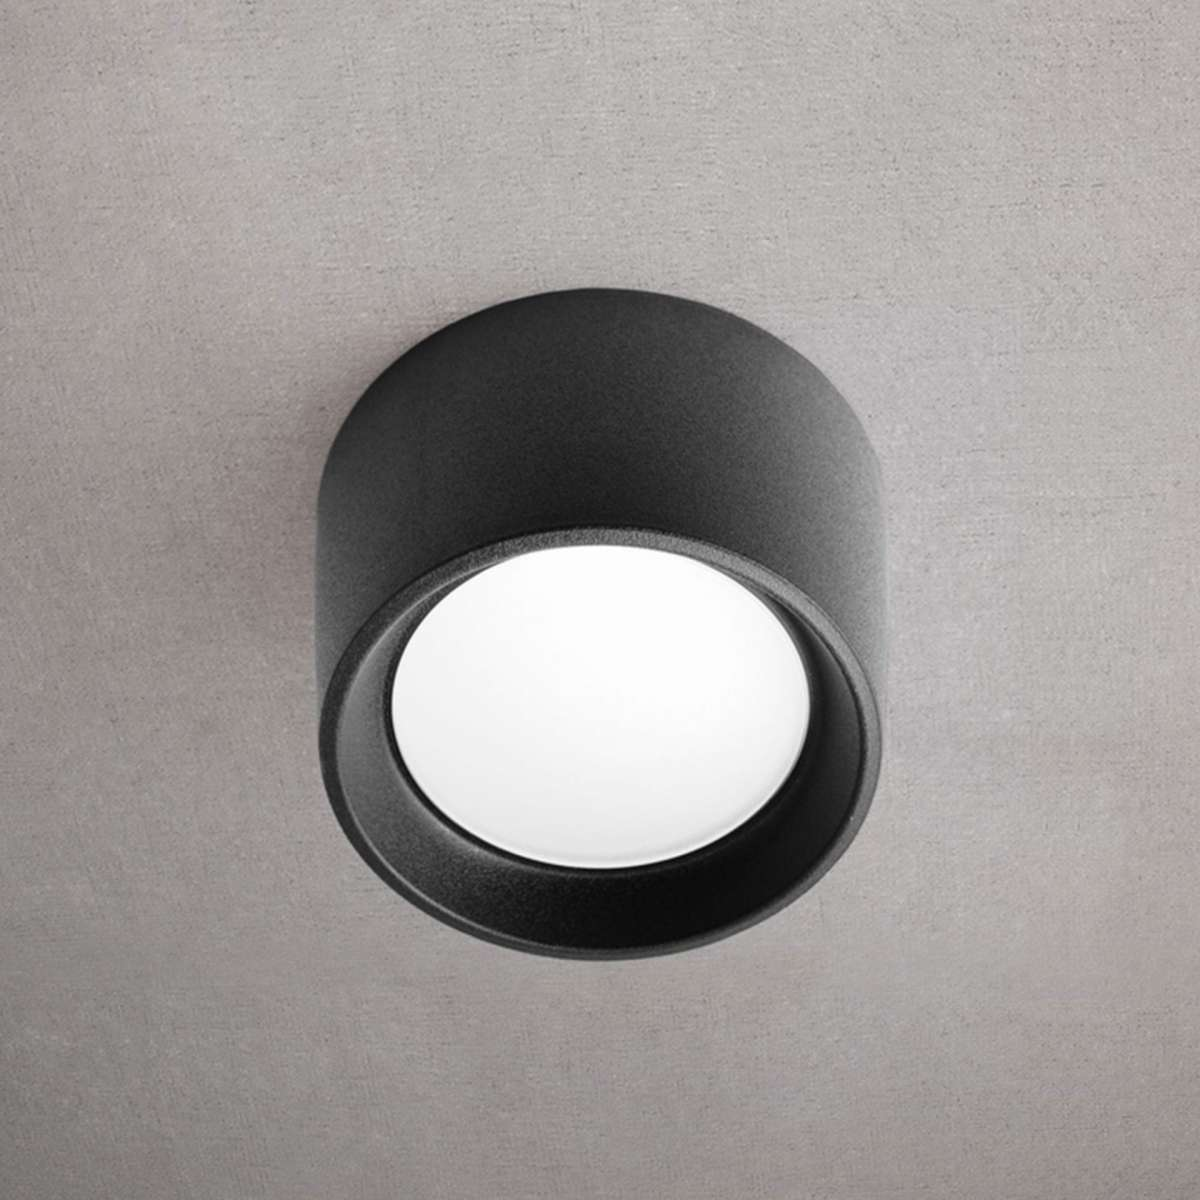 Fumagalli LIVIA160BL Livia 160 Black LED 7W 4000K Ceiling Down Light